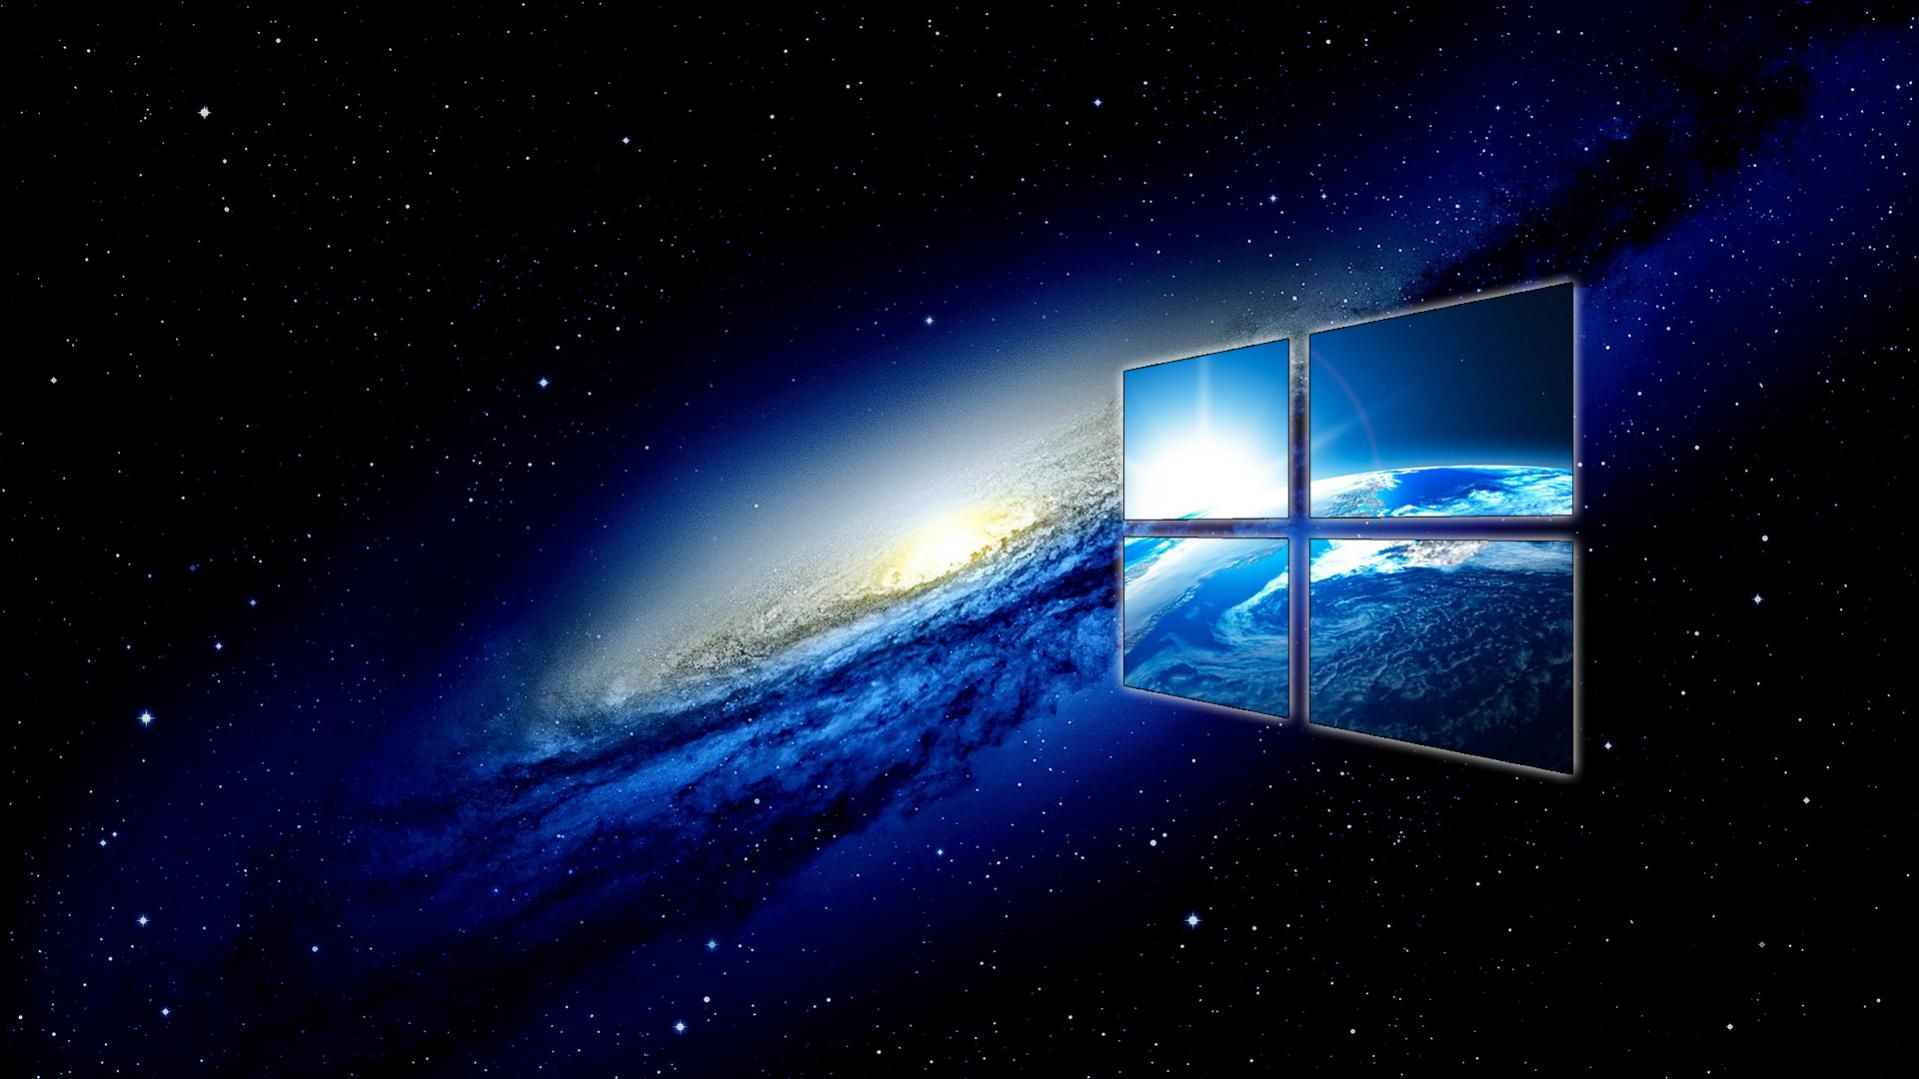 windows 10 backgrounds pictures - onwe.bioinnovate.co